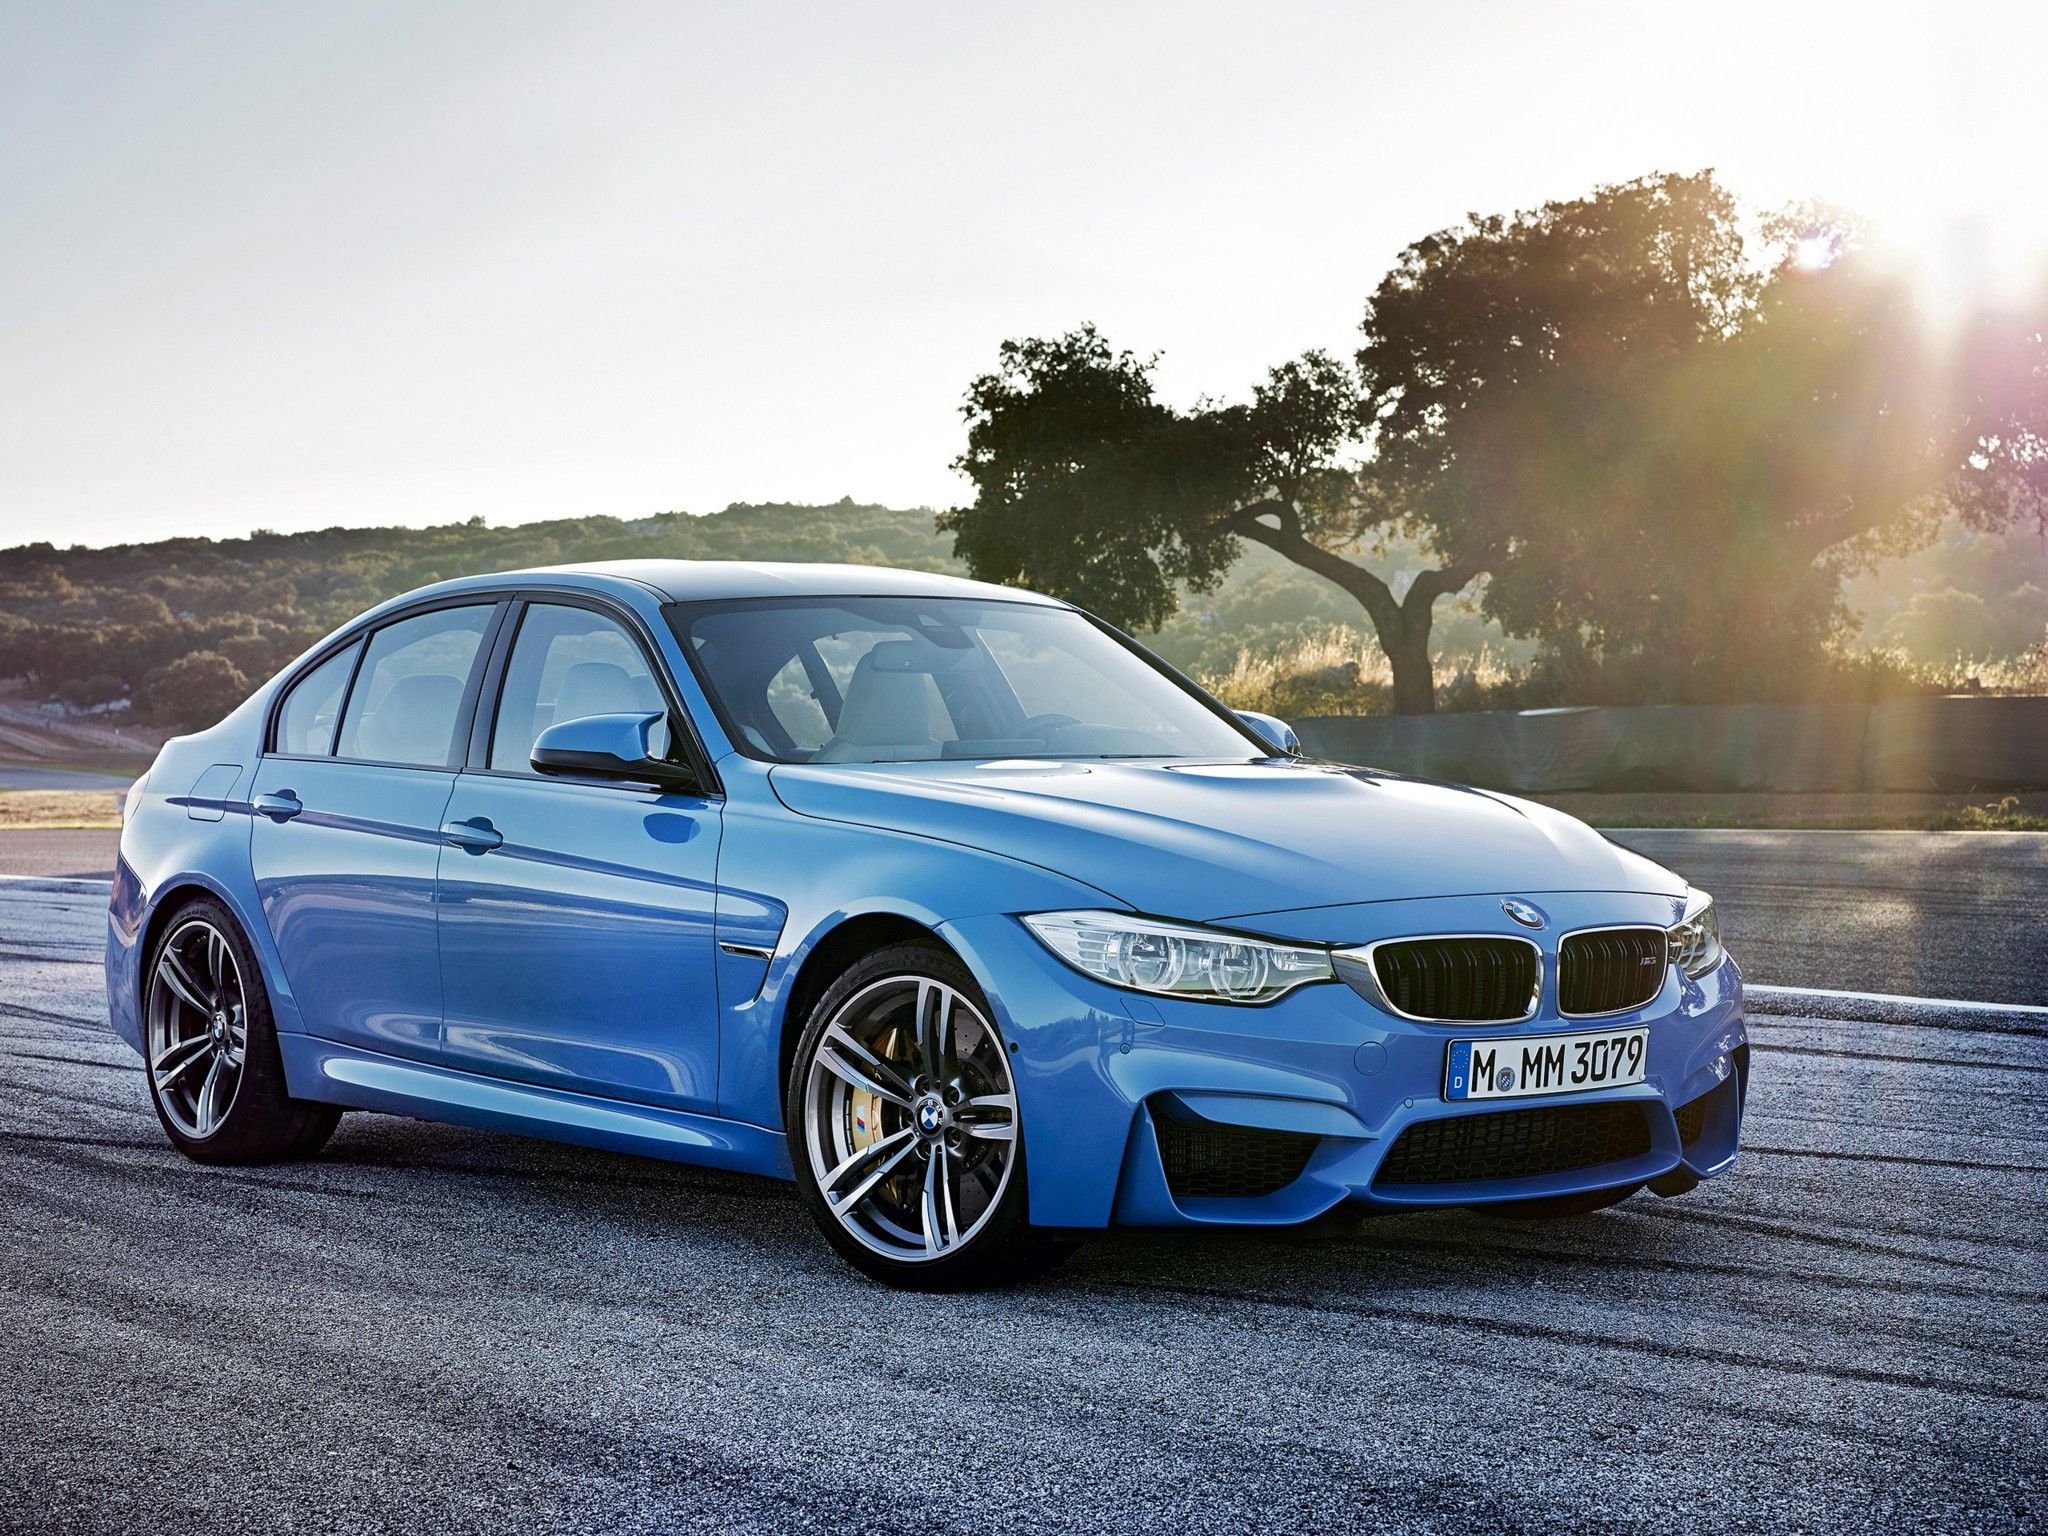 2014 BMW F30 M3 new dream car BMW Pinterest